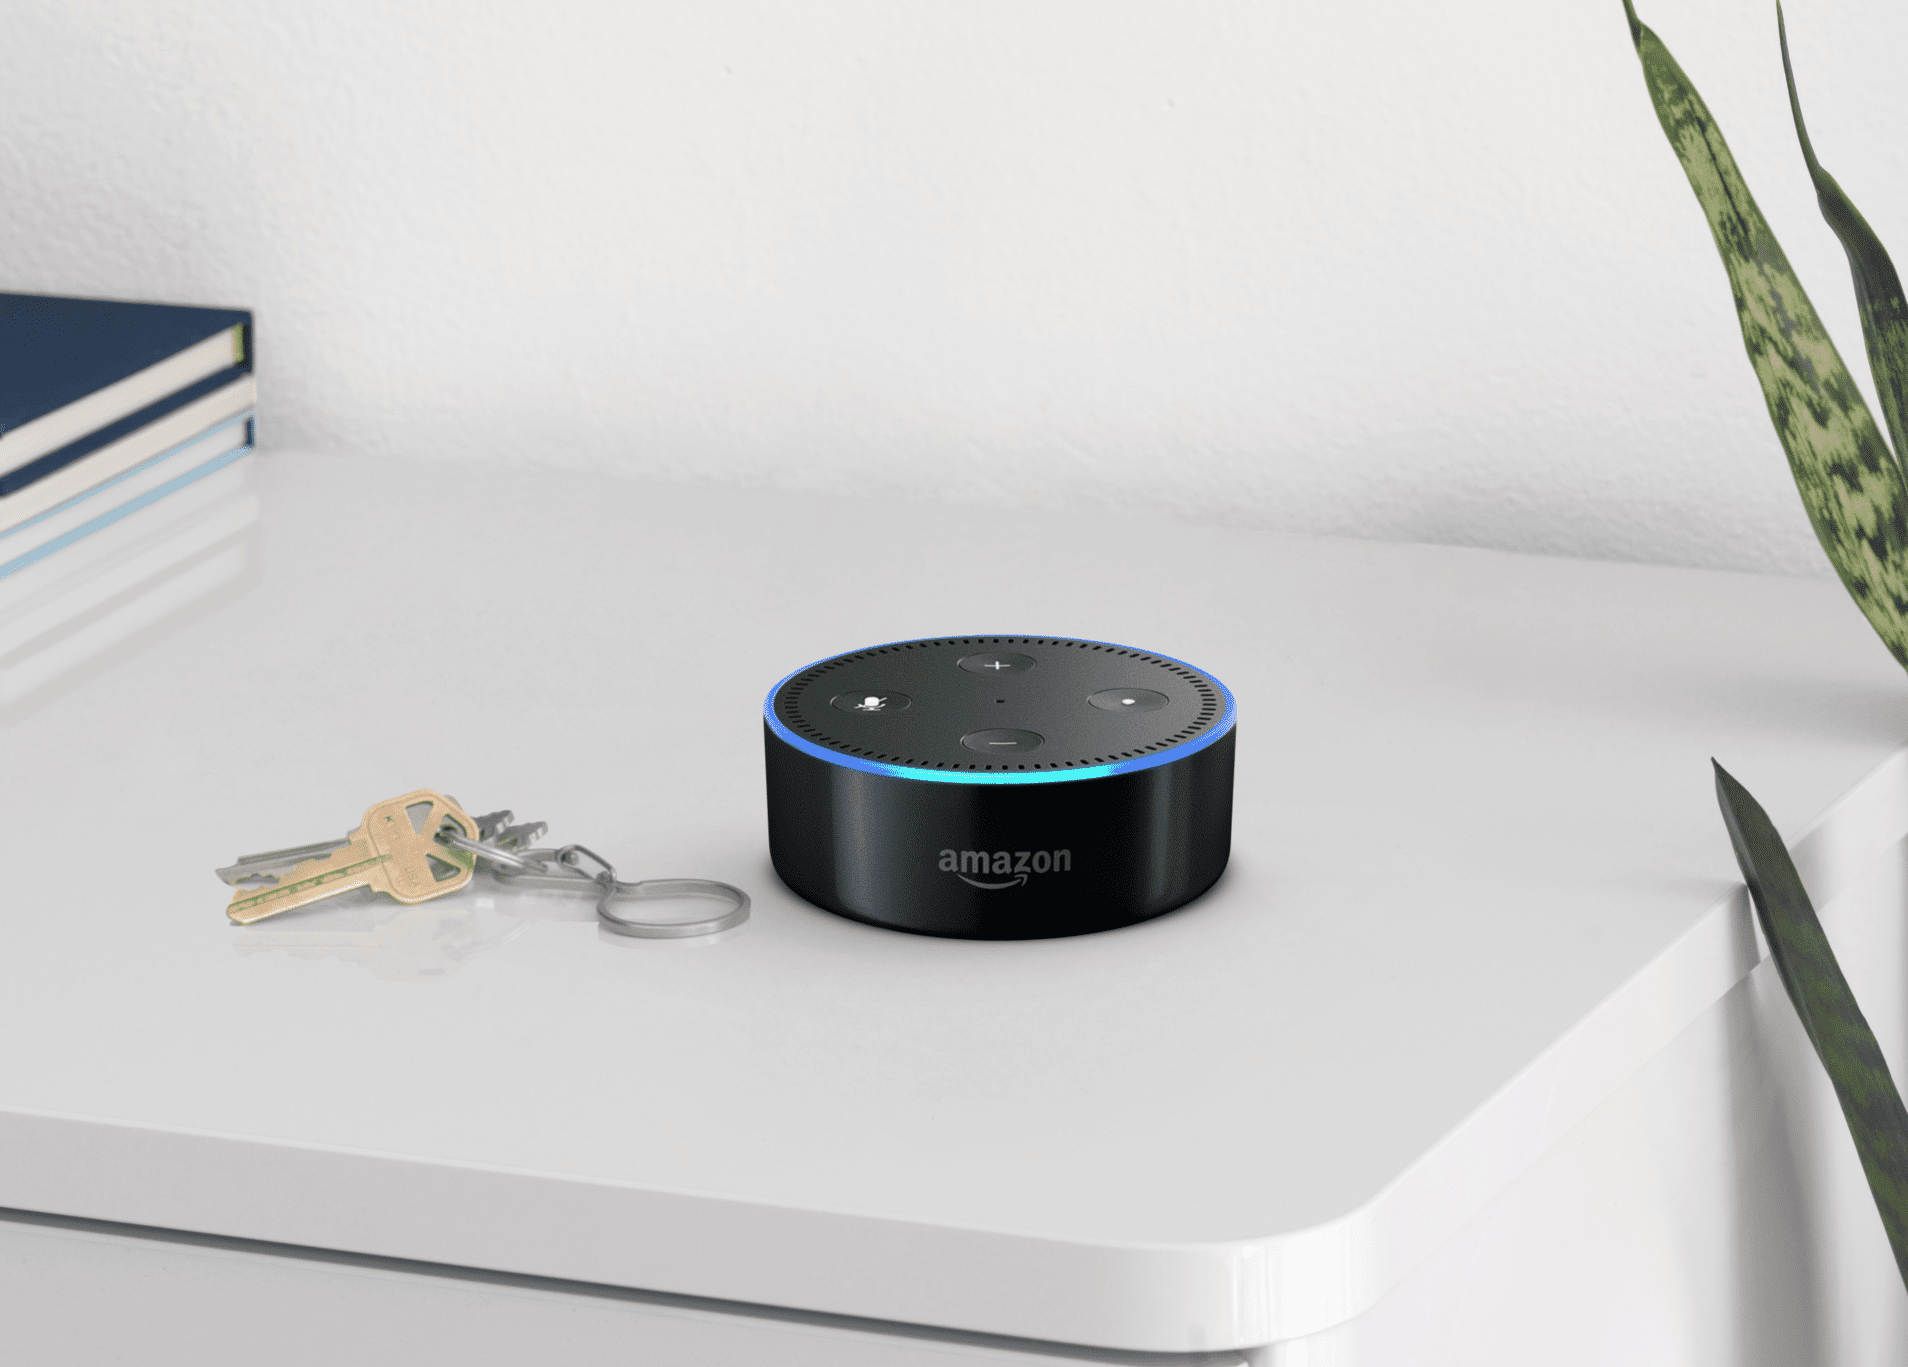 How to Pair Alexa With a Bluetooth Speaker